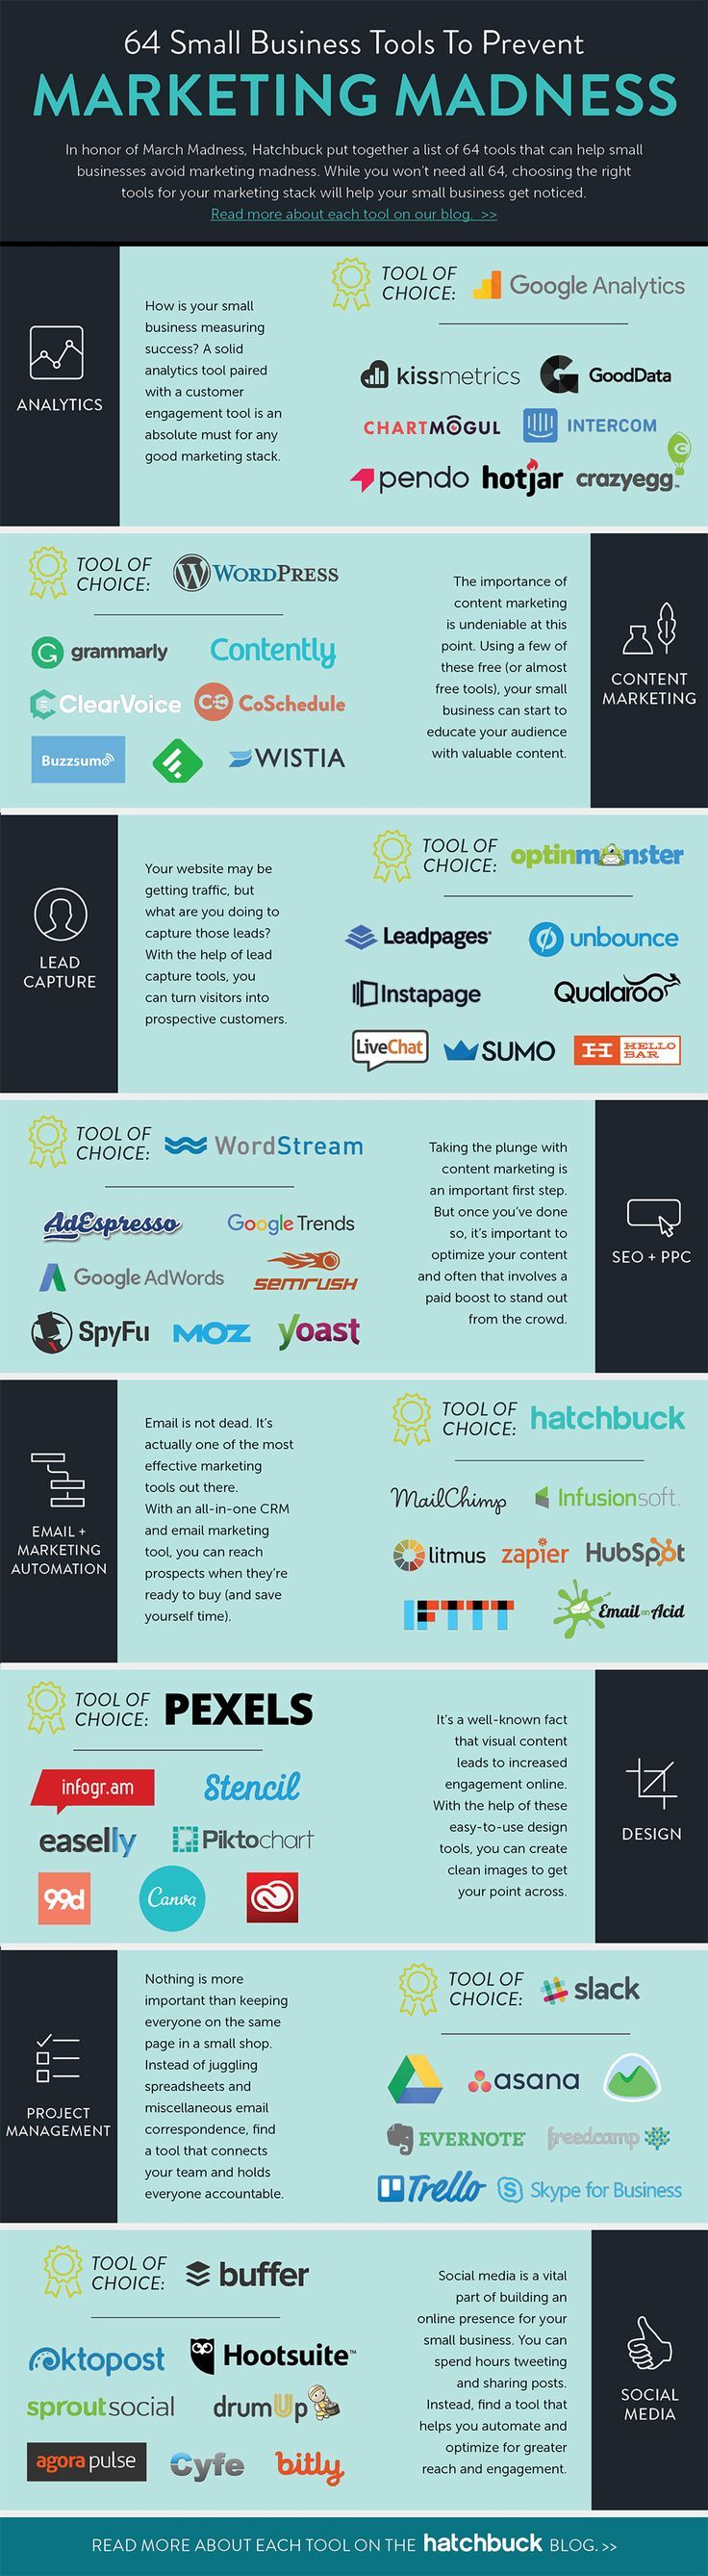 64 Affordable Small #Business #Marketing Tools You'd be Mad Not to Try #Infographic #Startup #SocialMedia #WebDesign #EmailMarketing #SEO